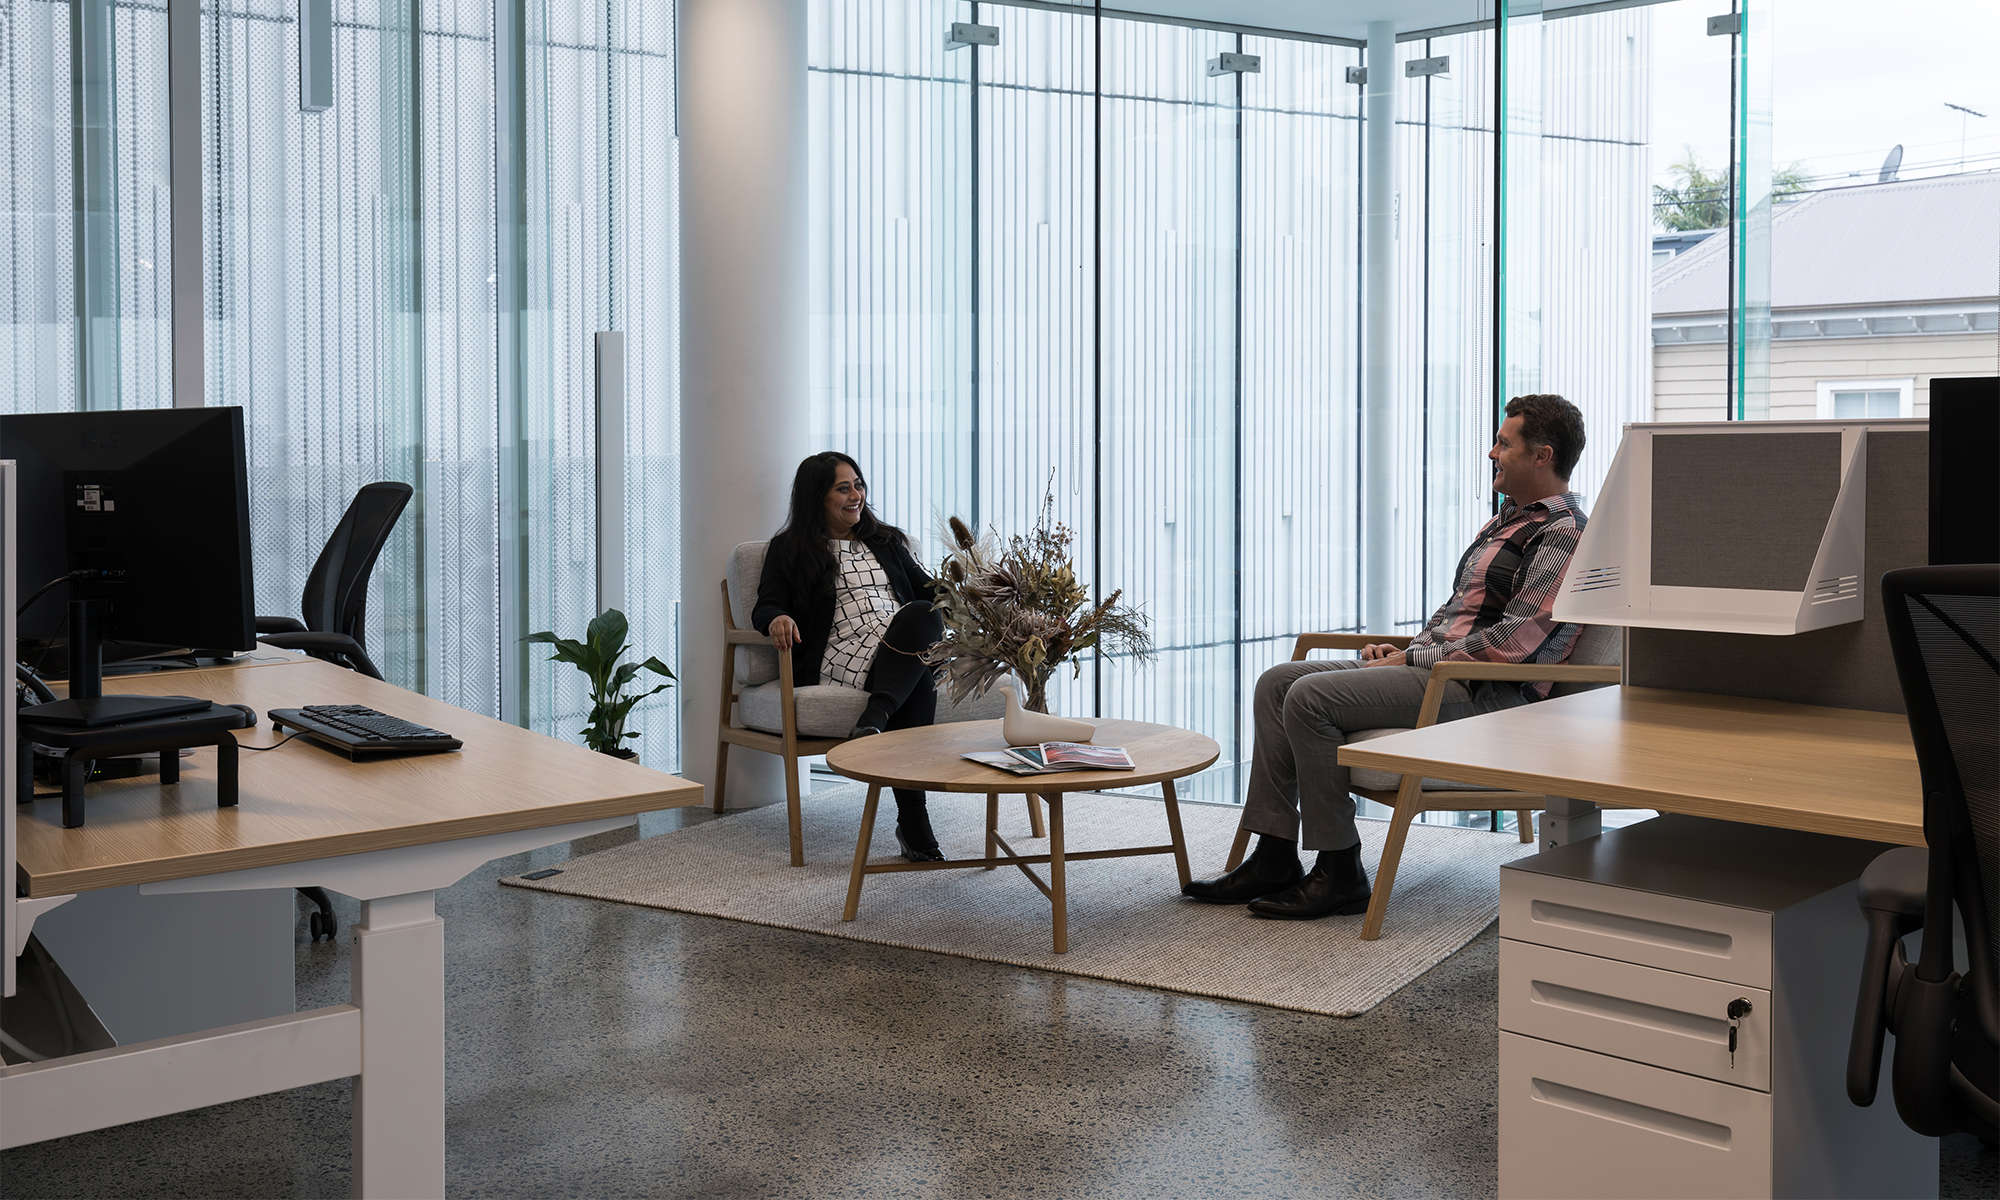 Workers sitting in modern European office furniture